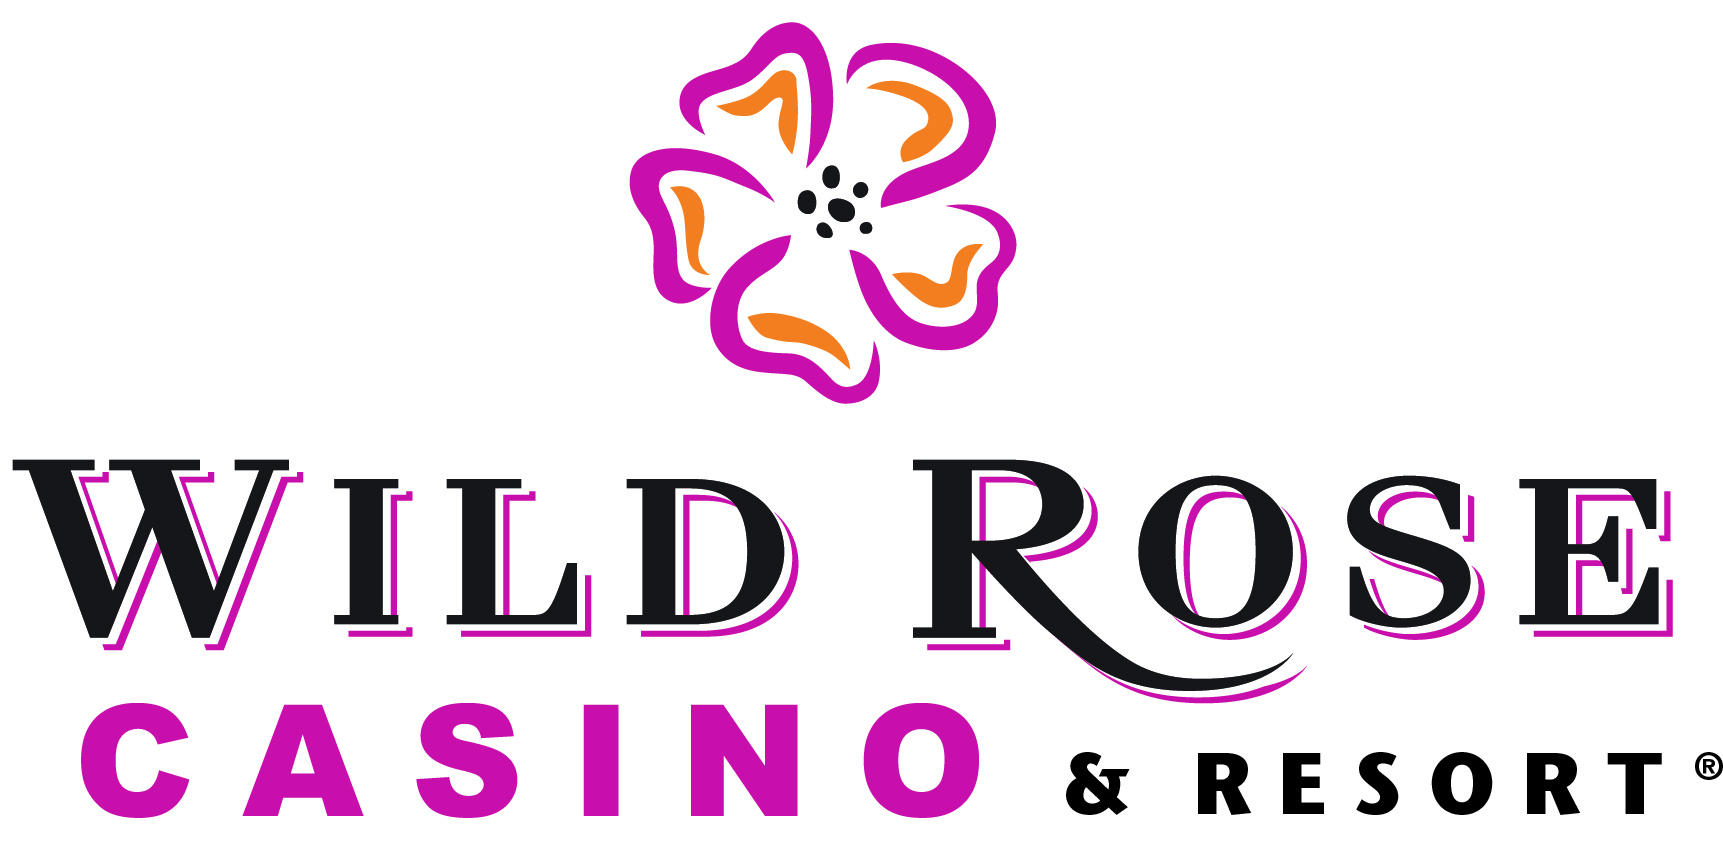 Wild rose casino and resort casino slots online for free